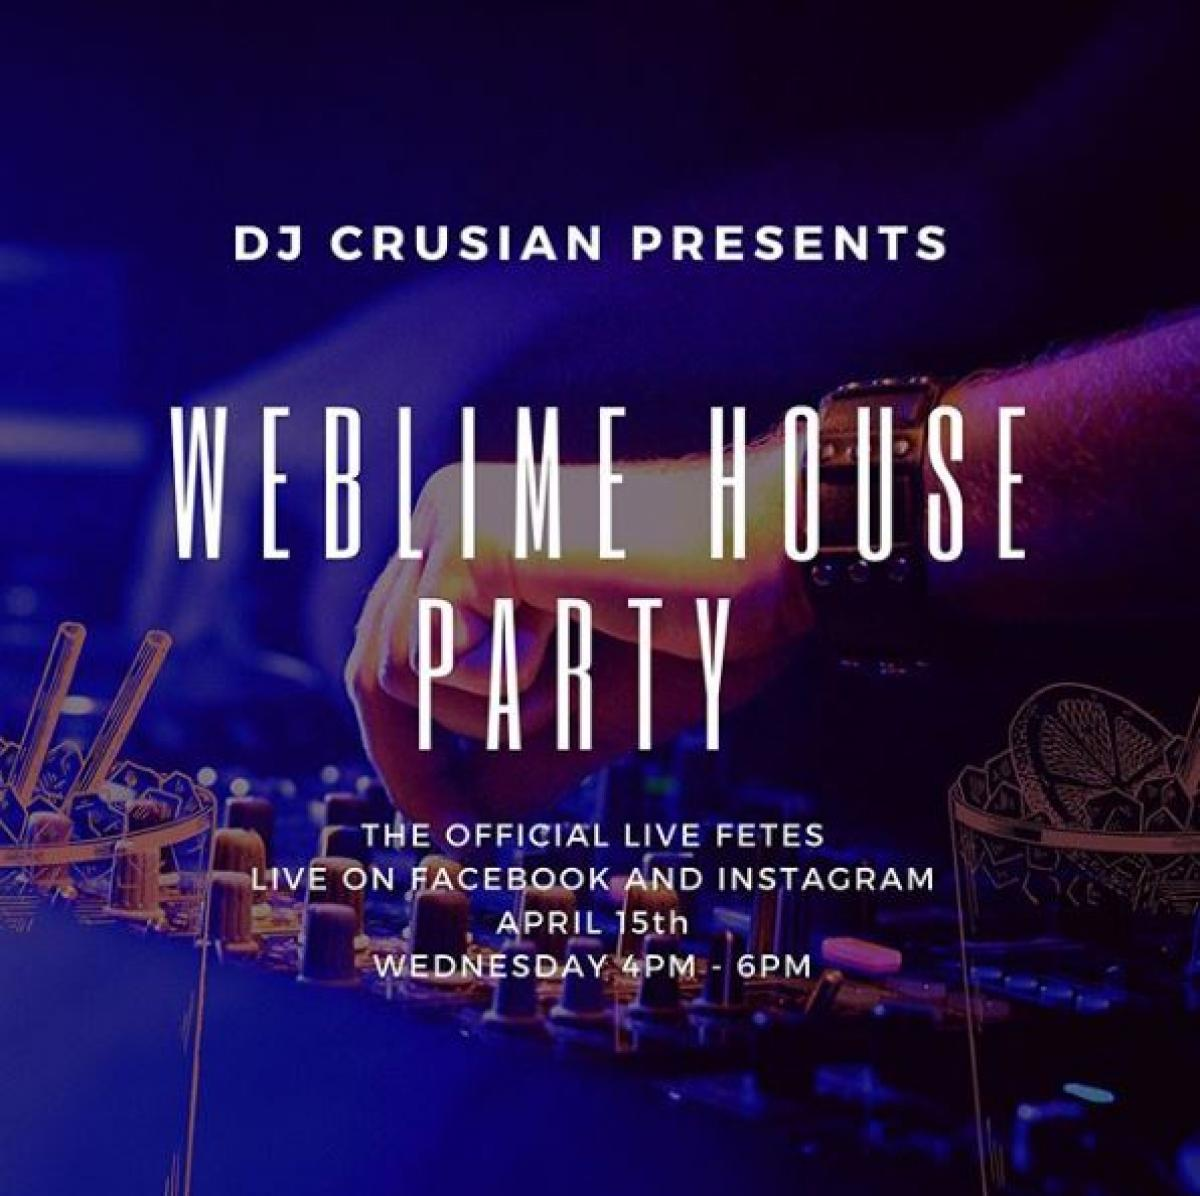 Web Lime House Party flyer or graphic.